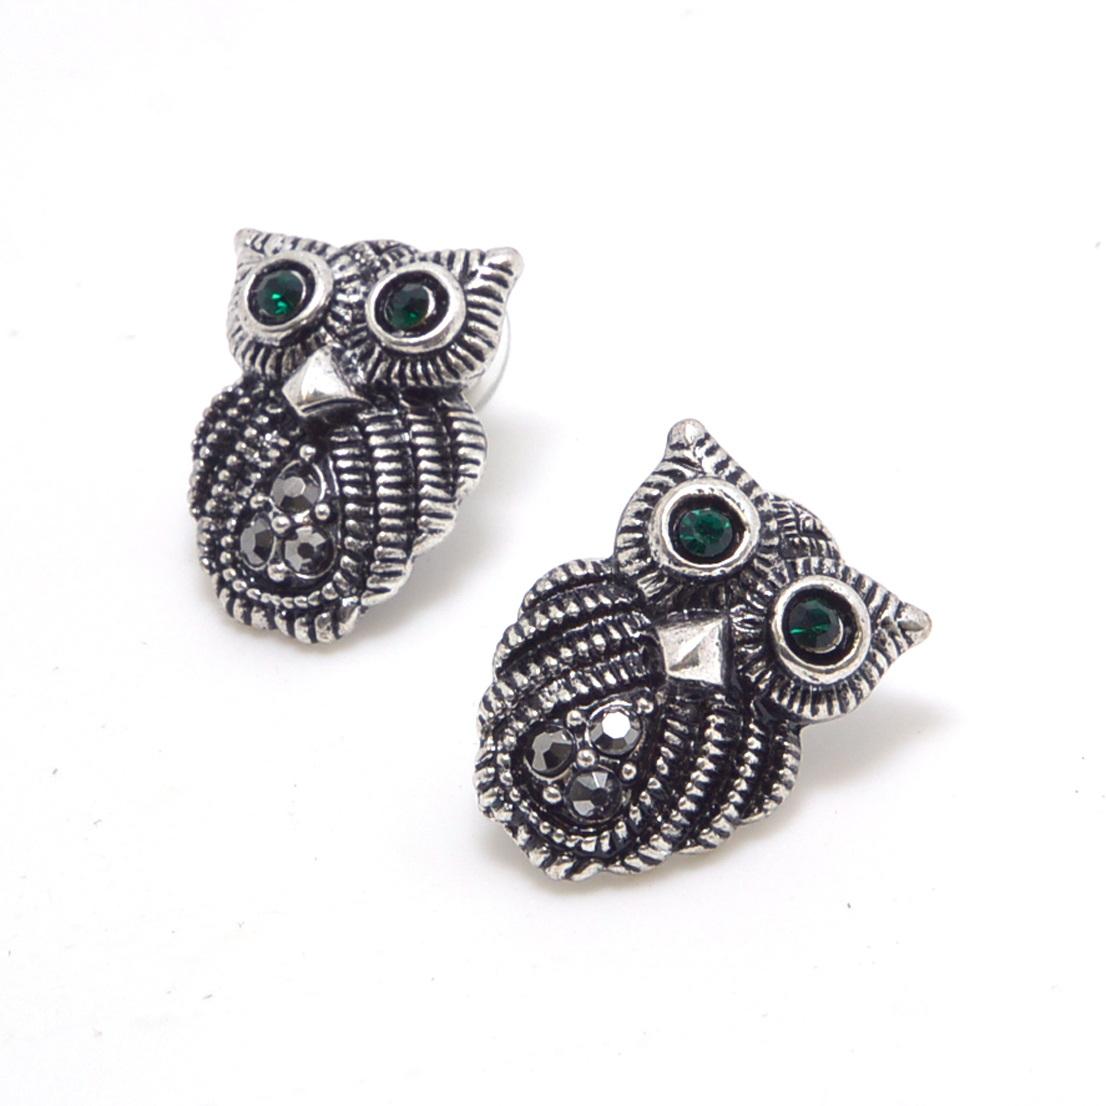 Silver-Tone Owl Stud Earrings with Green Rhinestone Eyes